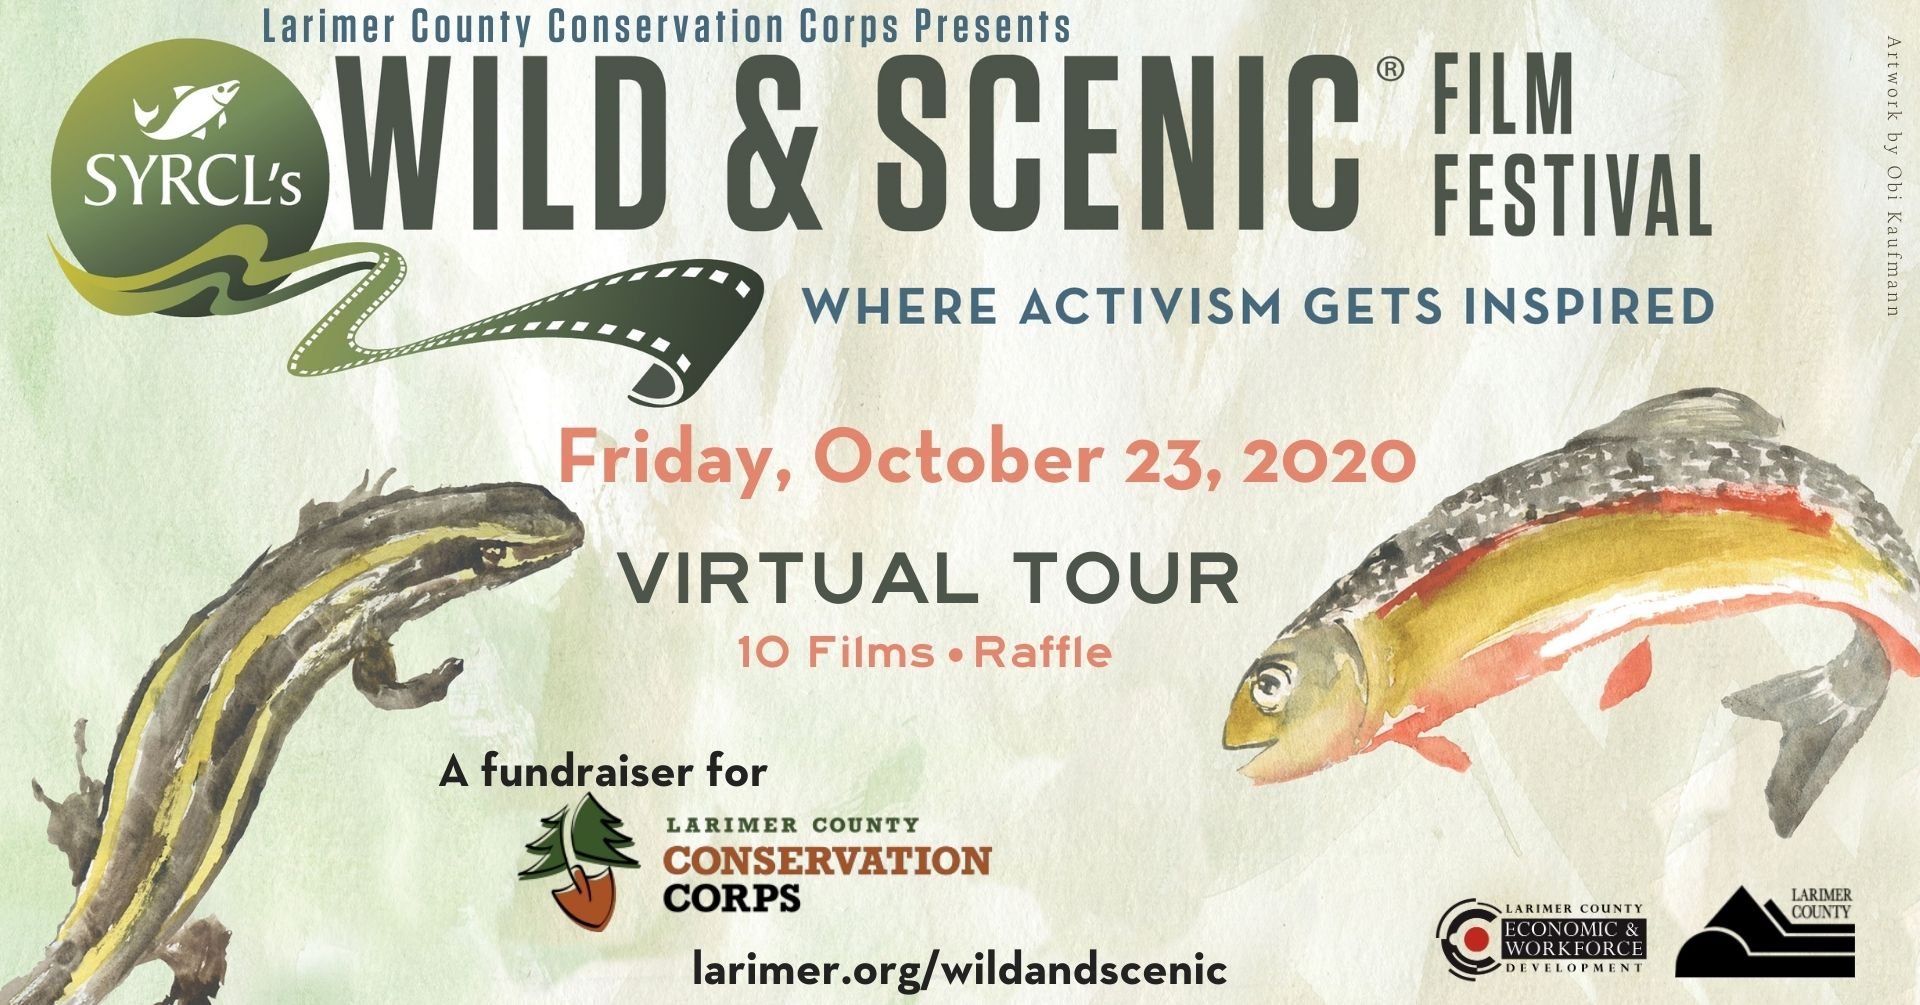 Wild & Scenic Film Festival On Tour from Fort Collins